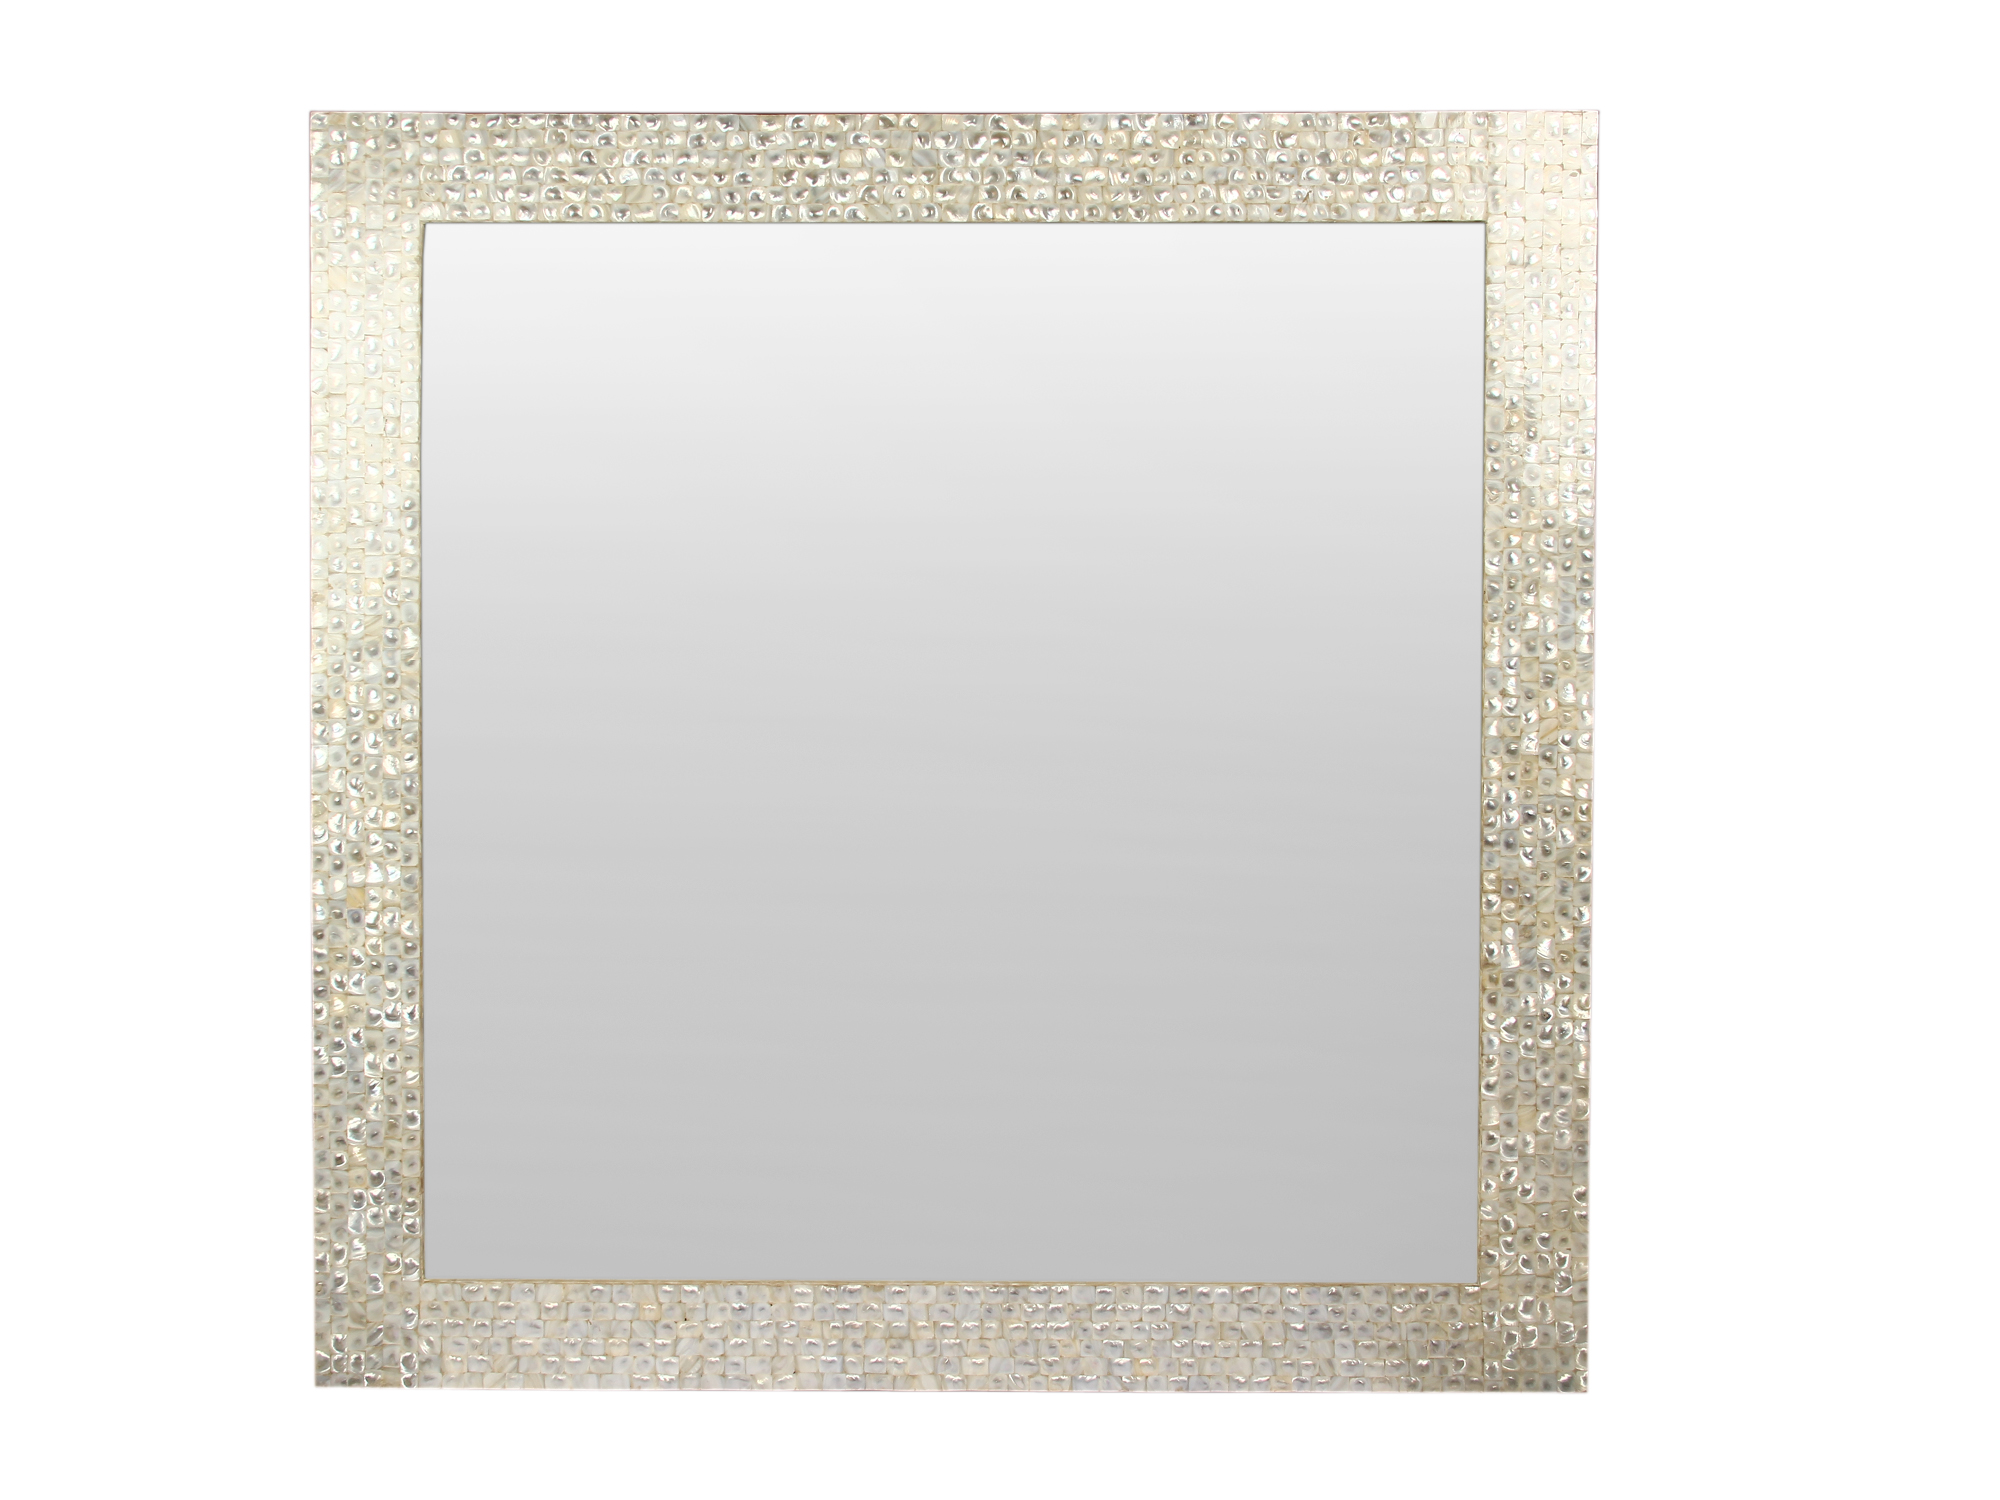 white mother of pearl mirror frame size 3x3